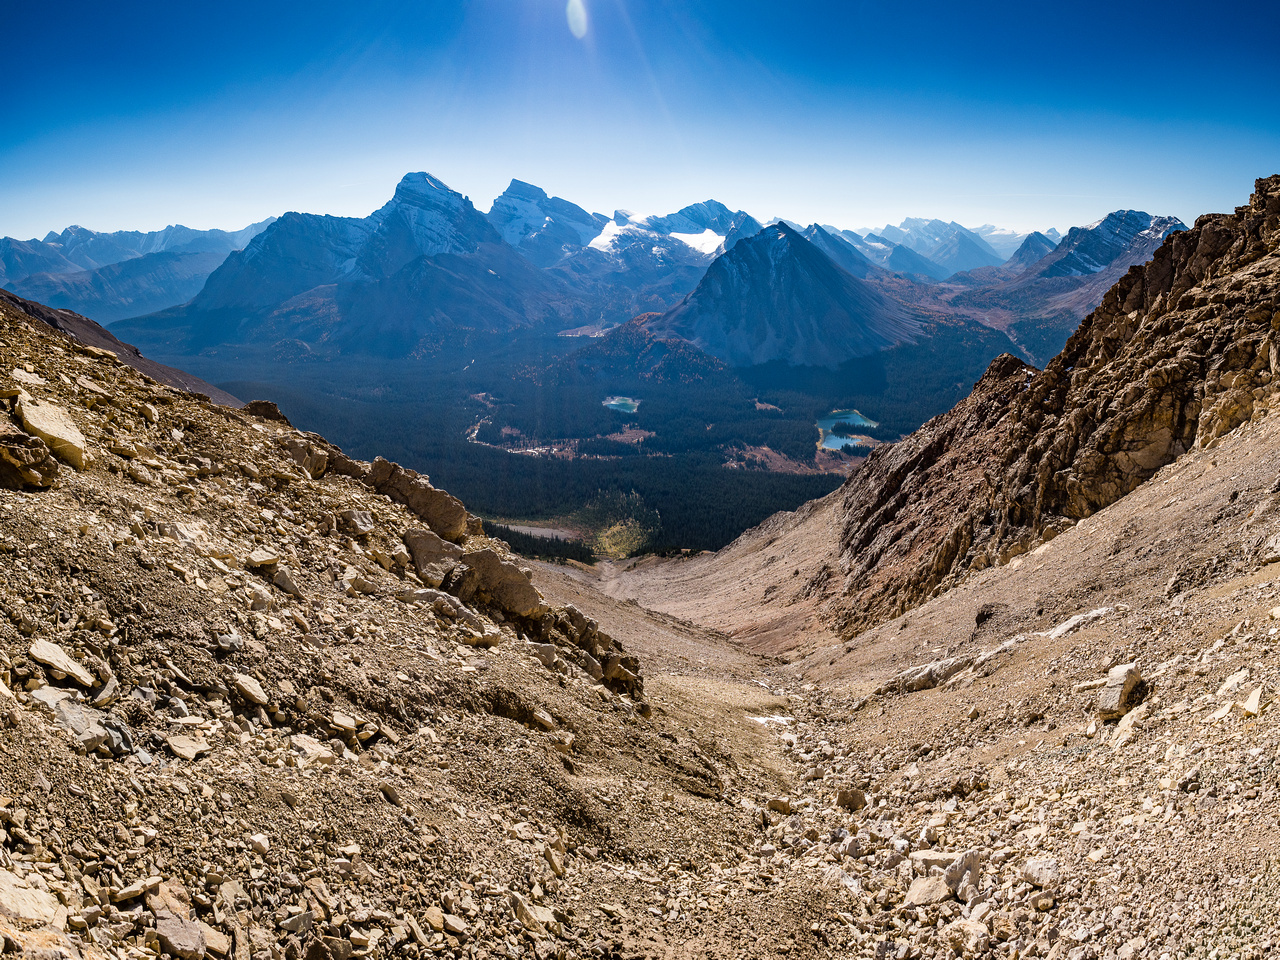 Looking back down the huge SE gully towards the Red Deer Lakes. Douglas, St. Bride, Lychnis and Oyster Ridge at center.